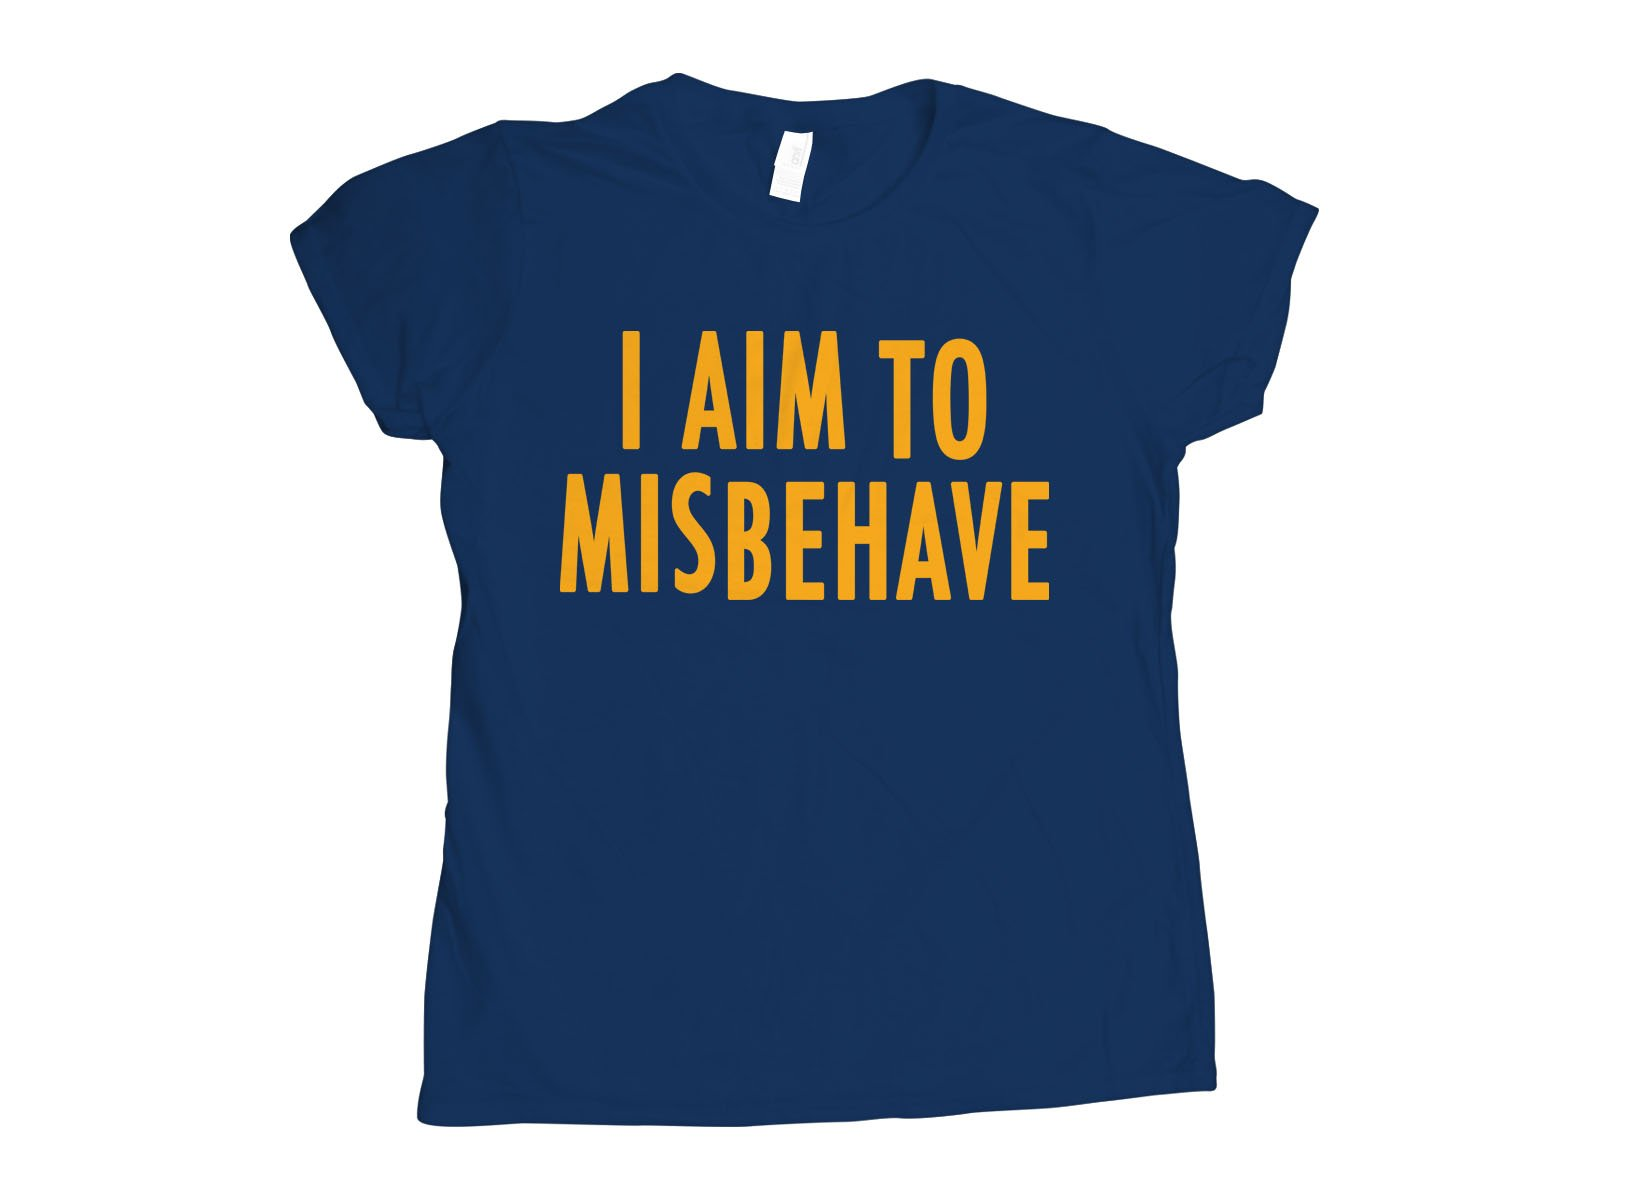 I Aim To Misbehave on Womens T-Shirt